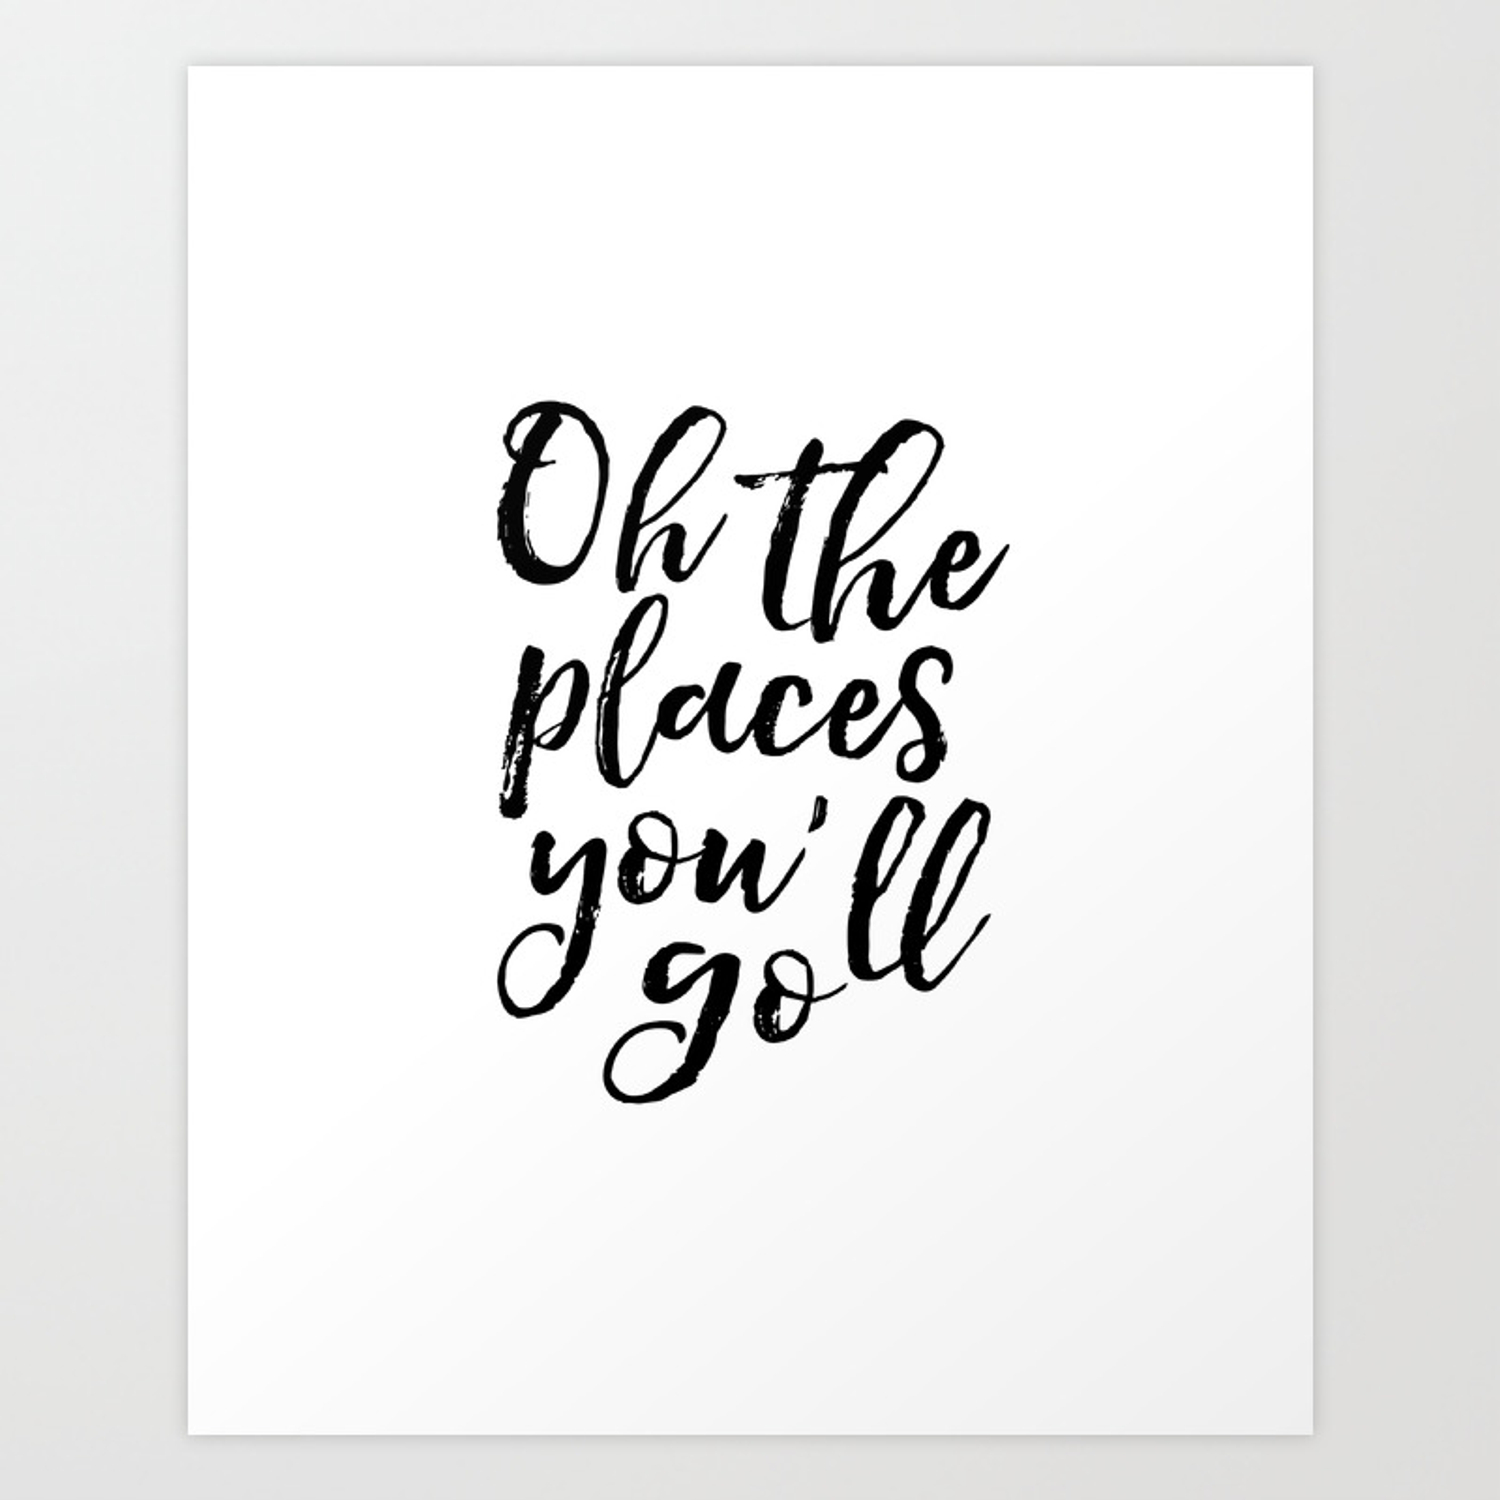 graphic regarding Oh the Places You'll Go Printable referred to as Typography Print Printable Wall Artwork Oh the Puts Youll Shift Nursery Decor Stylish Experience Push Artwork Print